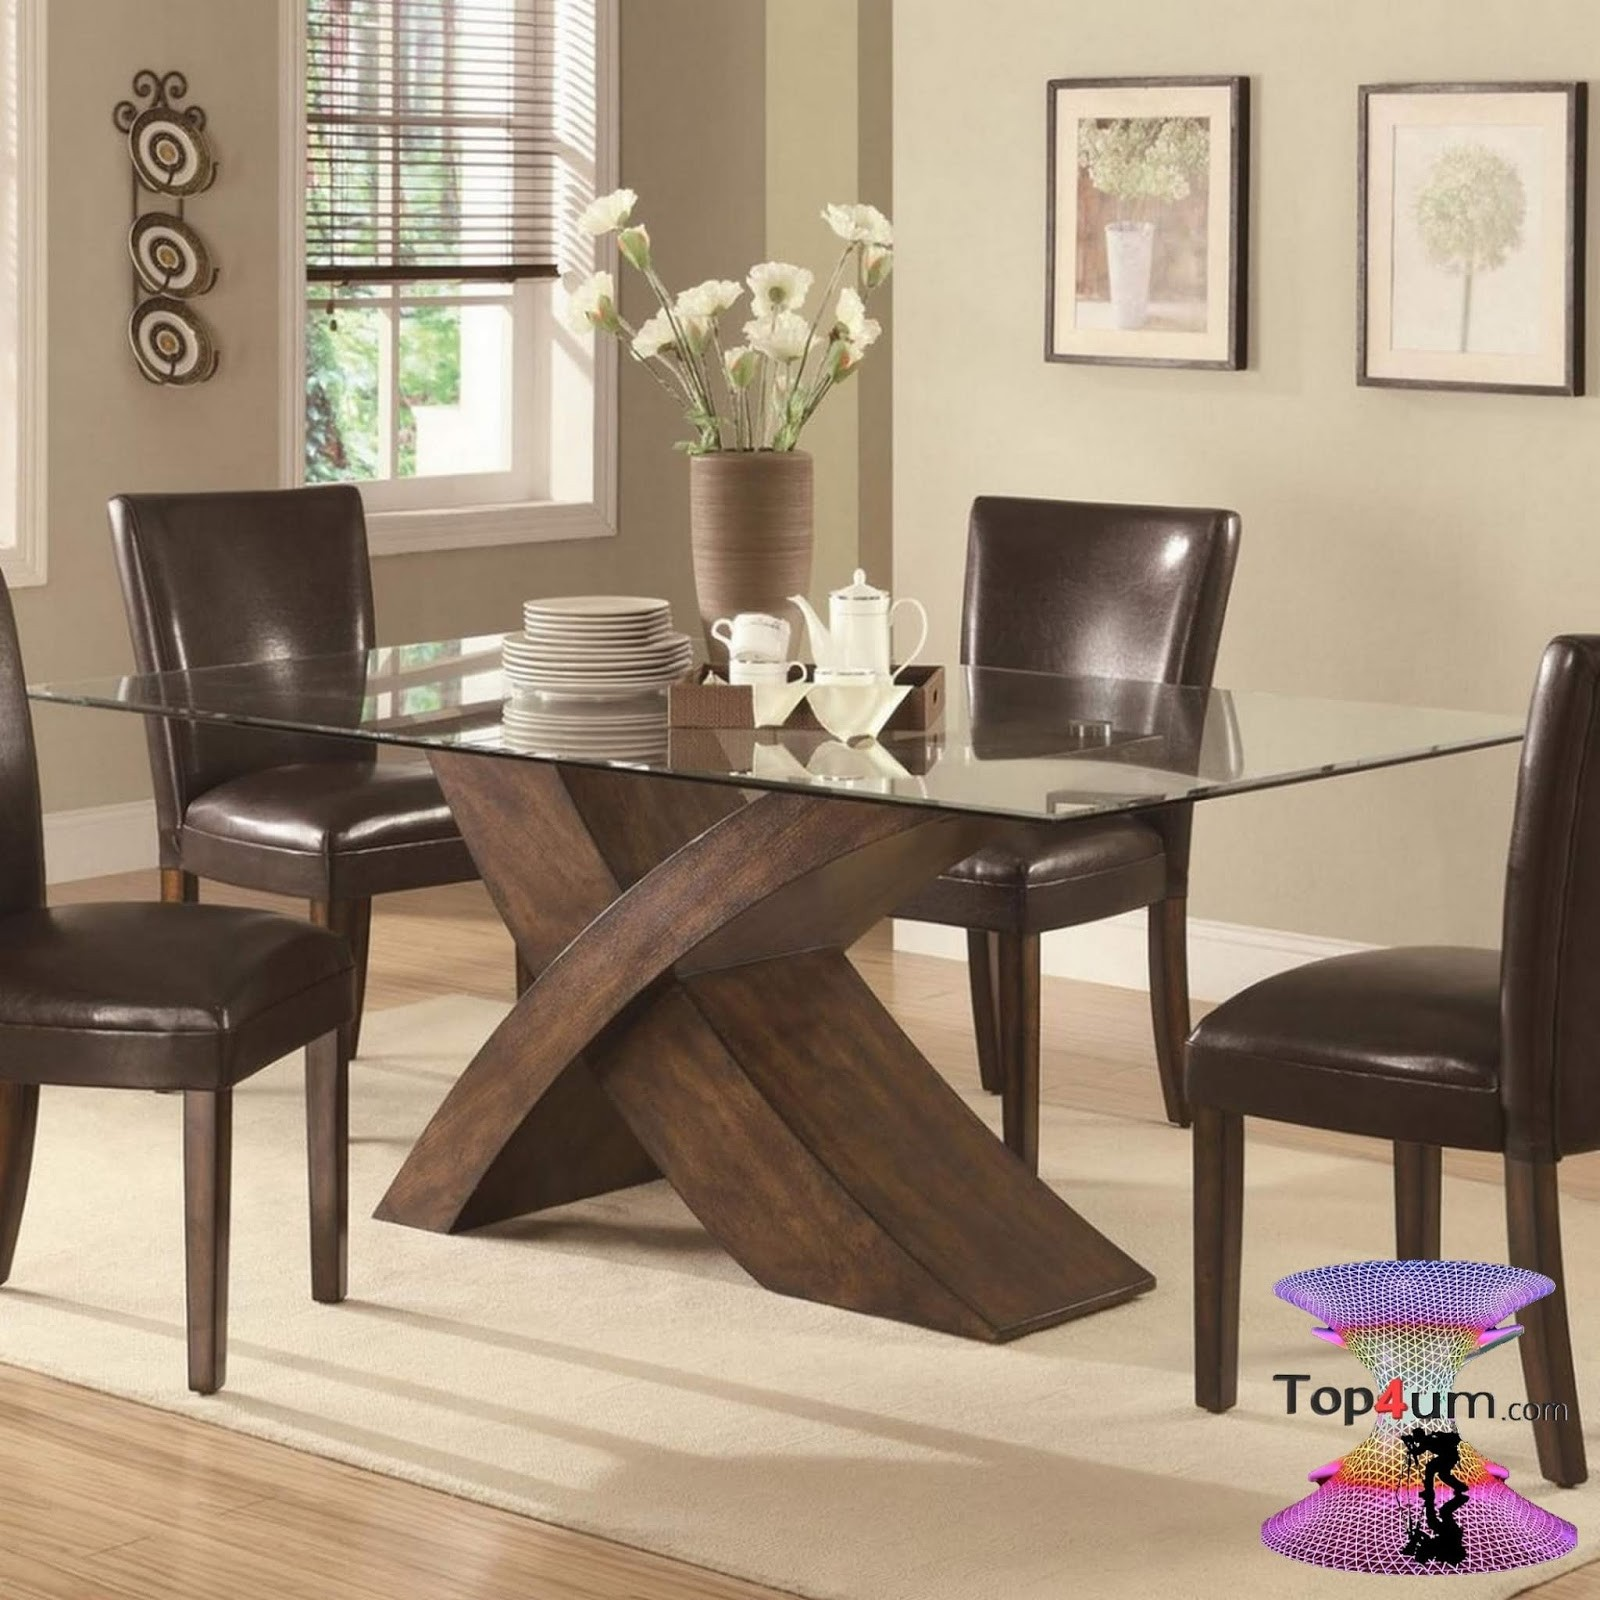 Exceptional Wood Base Glass Top Dining Table 1 Good Ideas